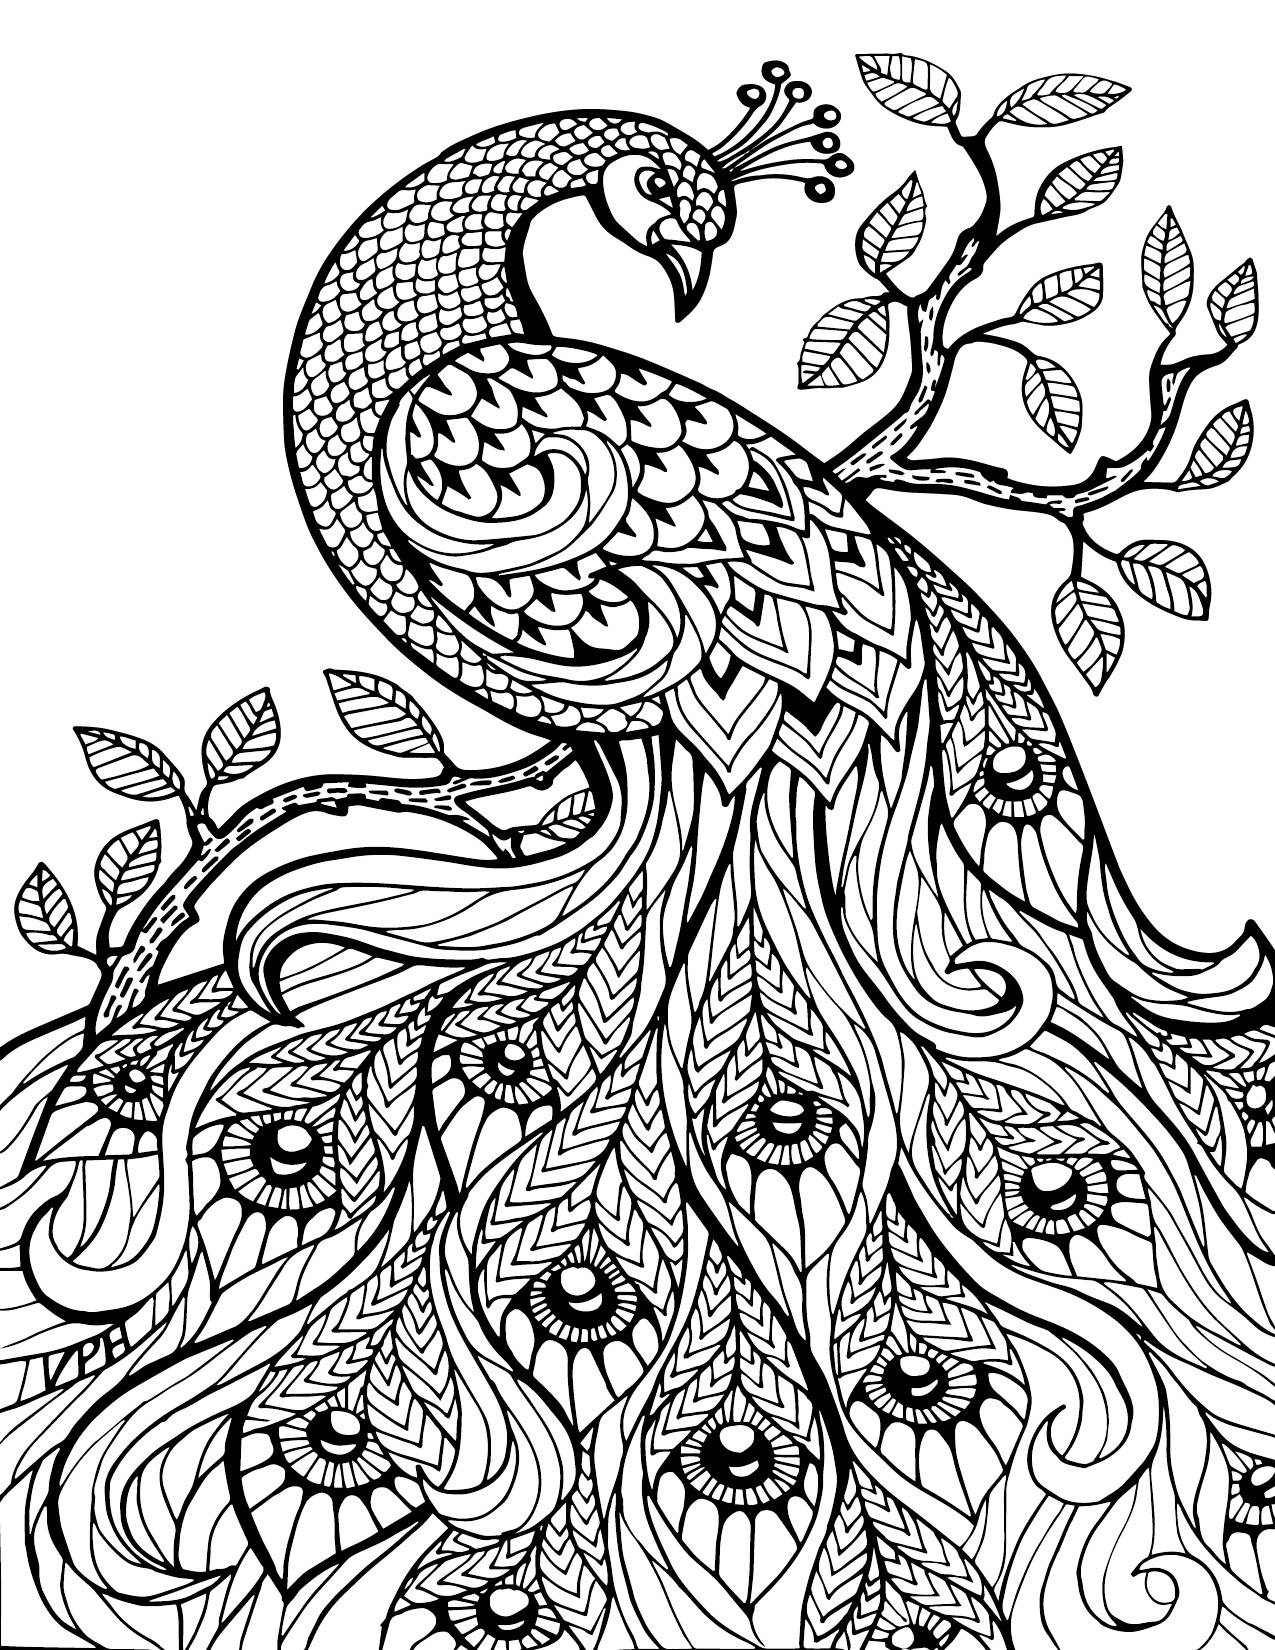 1275x1650 Fresh Downloadable Adult Coloring Pages Free Coloring Pages Download